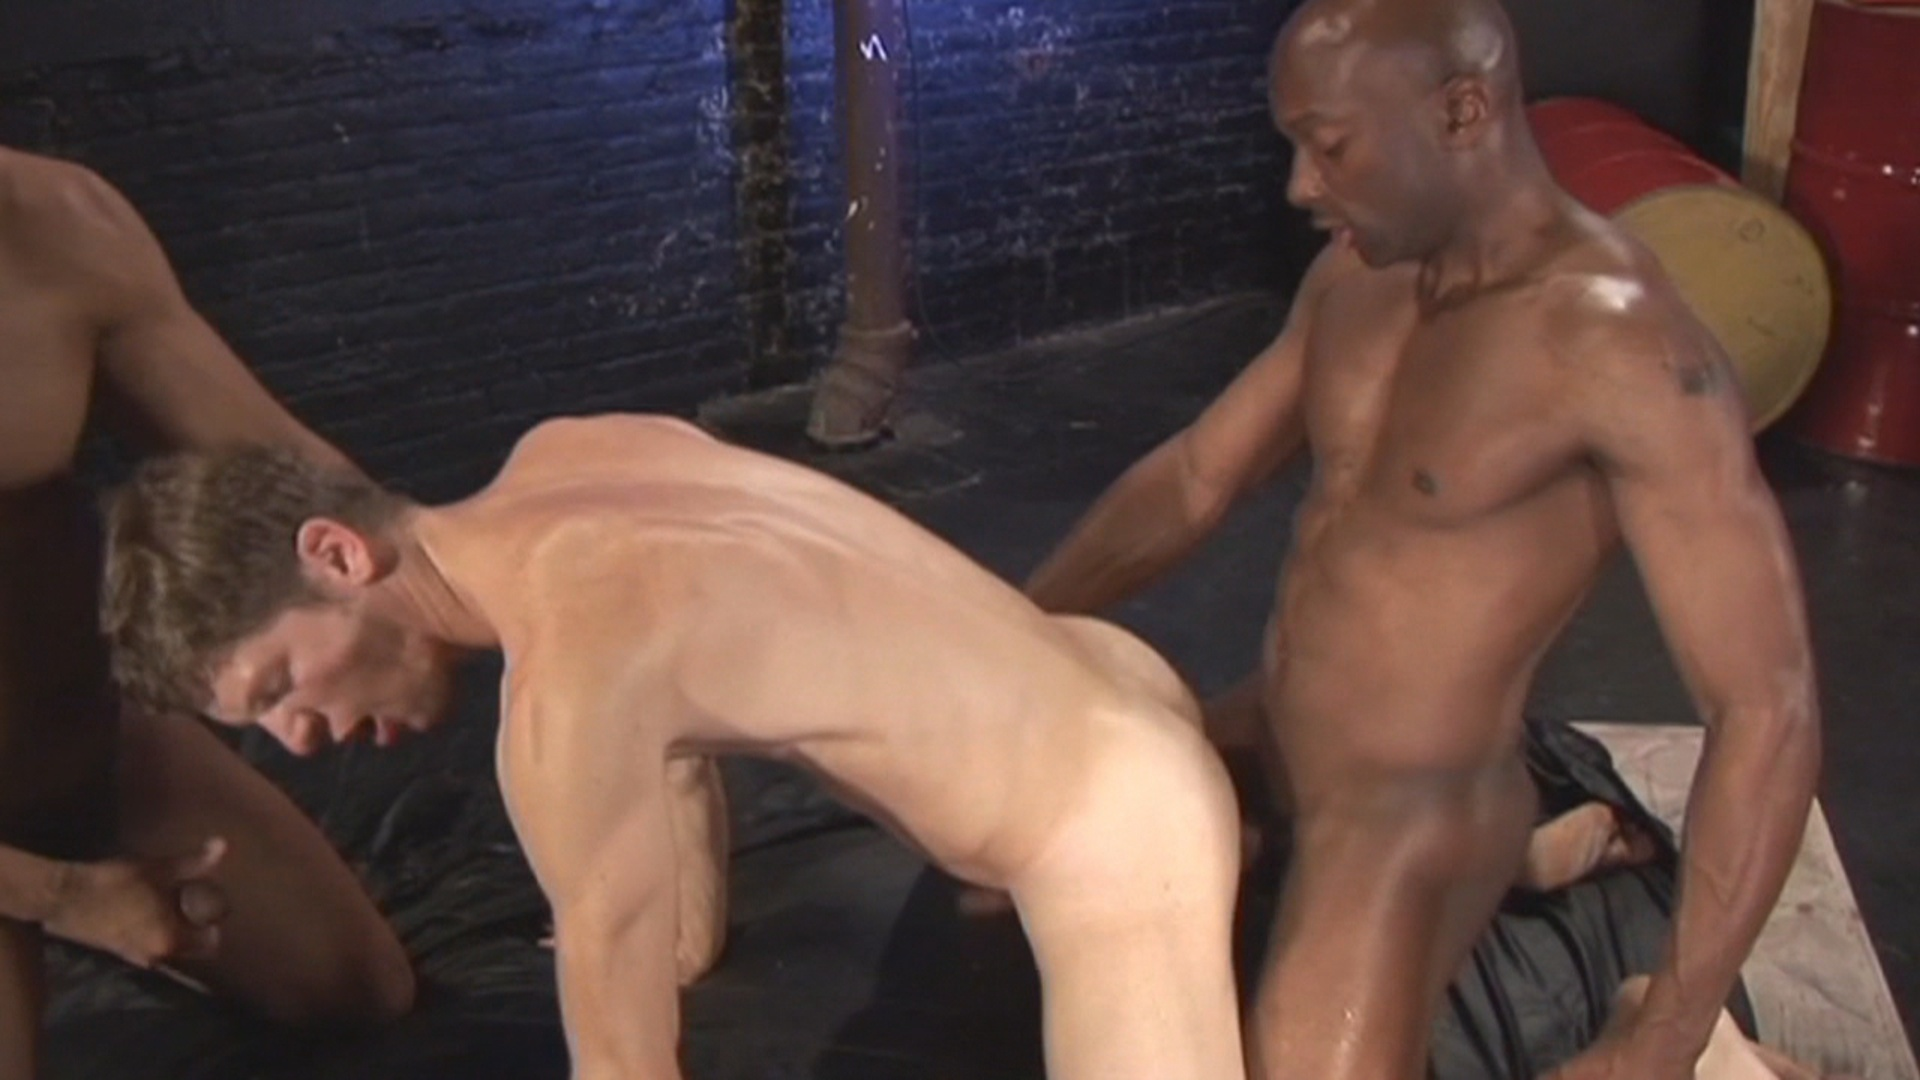 White Boy Bottom Sluts 2 Xvideo gay